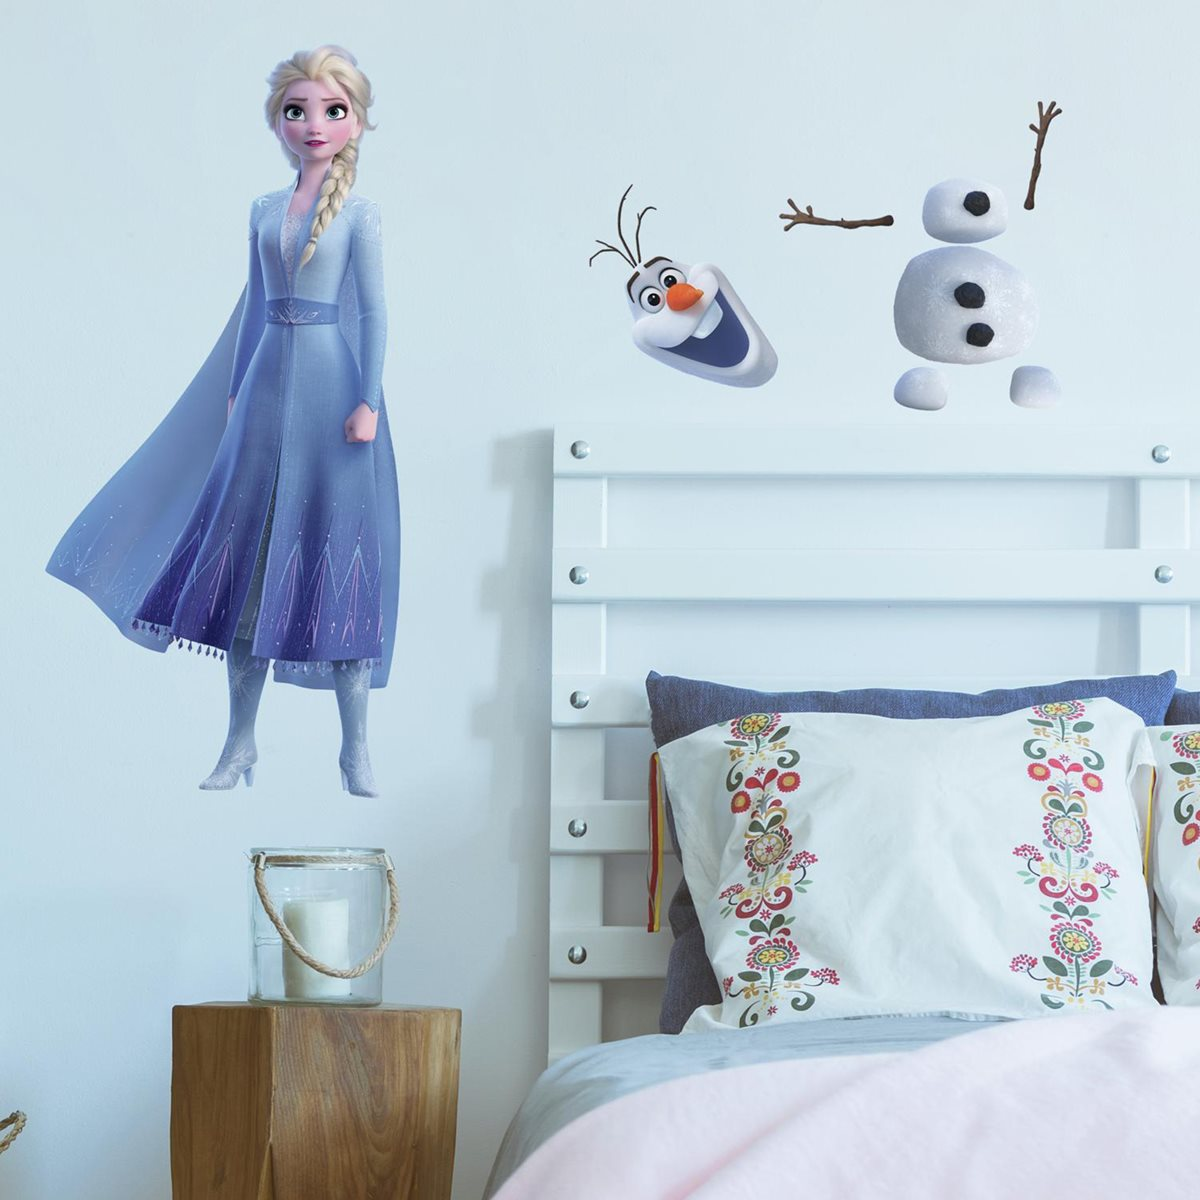 Ice Queen Elsa Ana Olaf wandttattoo Wall Sticker 13 Pcs New XL